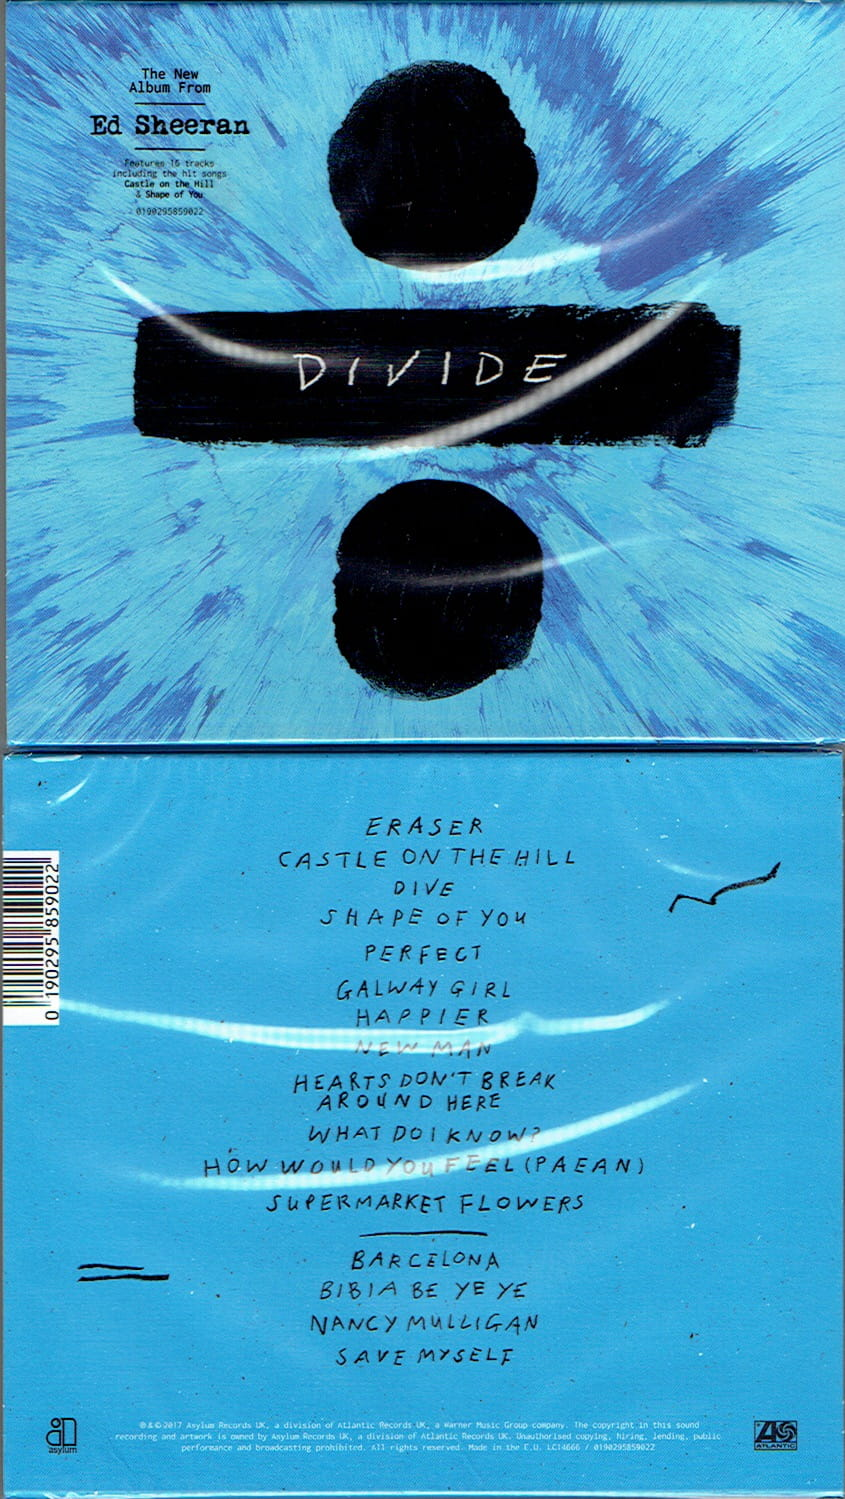 ED SHEERAN Divide - DELUXE CD -16 TRACKS